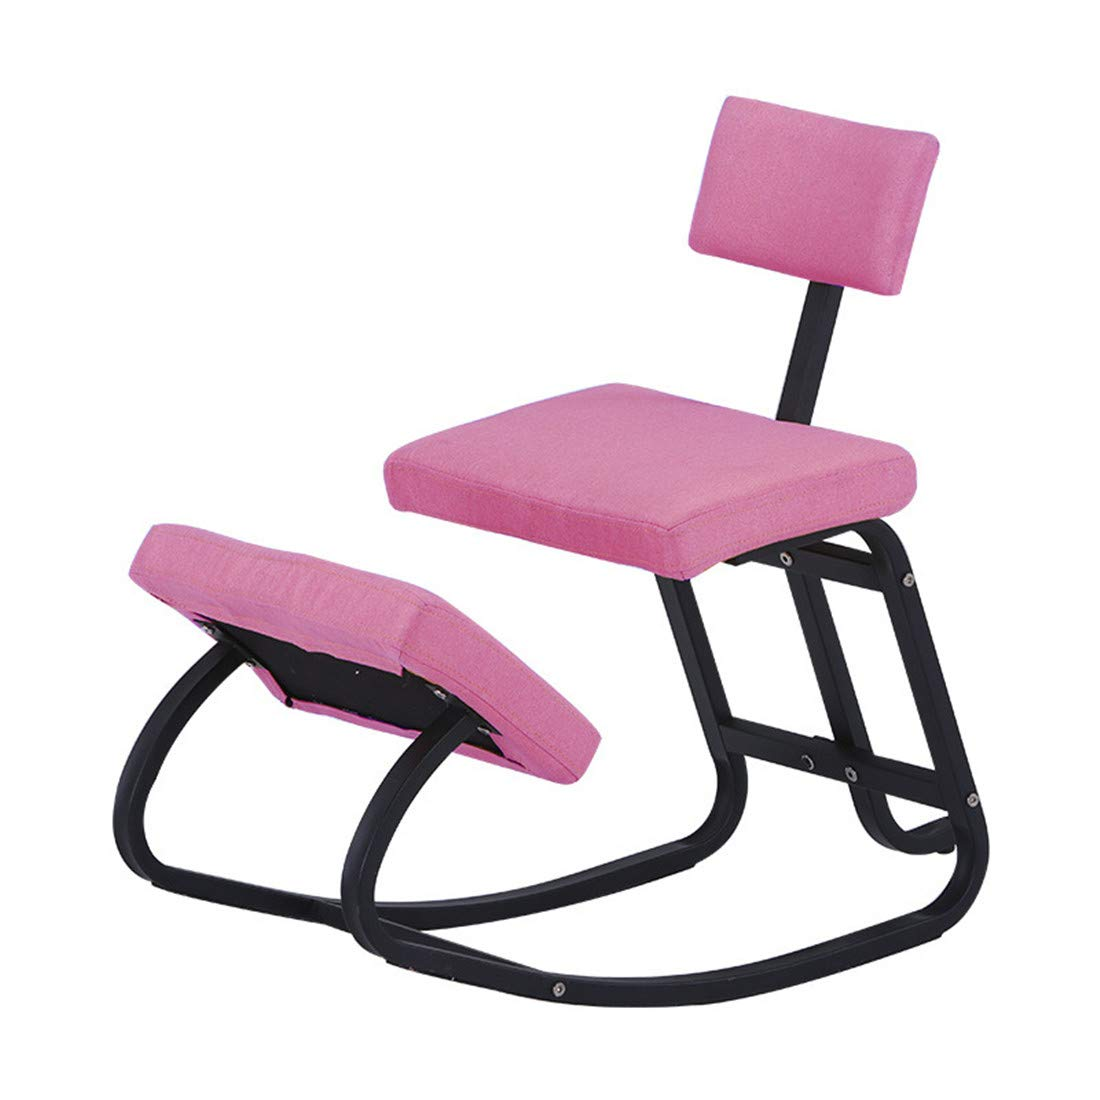 Kneeling Chairs Home Office Ergonomic Balance Fabric Cushion Metal Bracket Kneel Stool - Rocking with Back Support for Perfect Posture Kids Children with Backrest(Pink) by AJ ZJ Kneeling Chairs